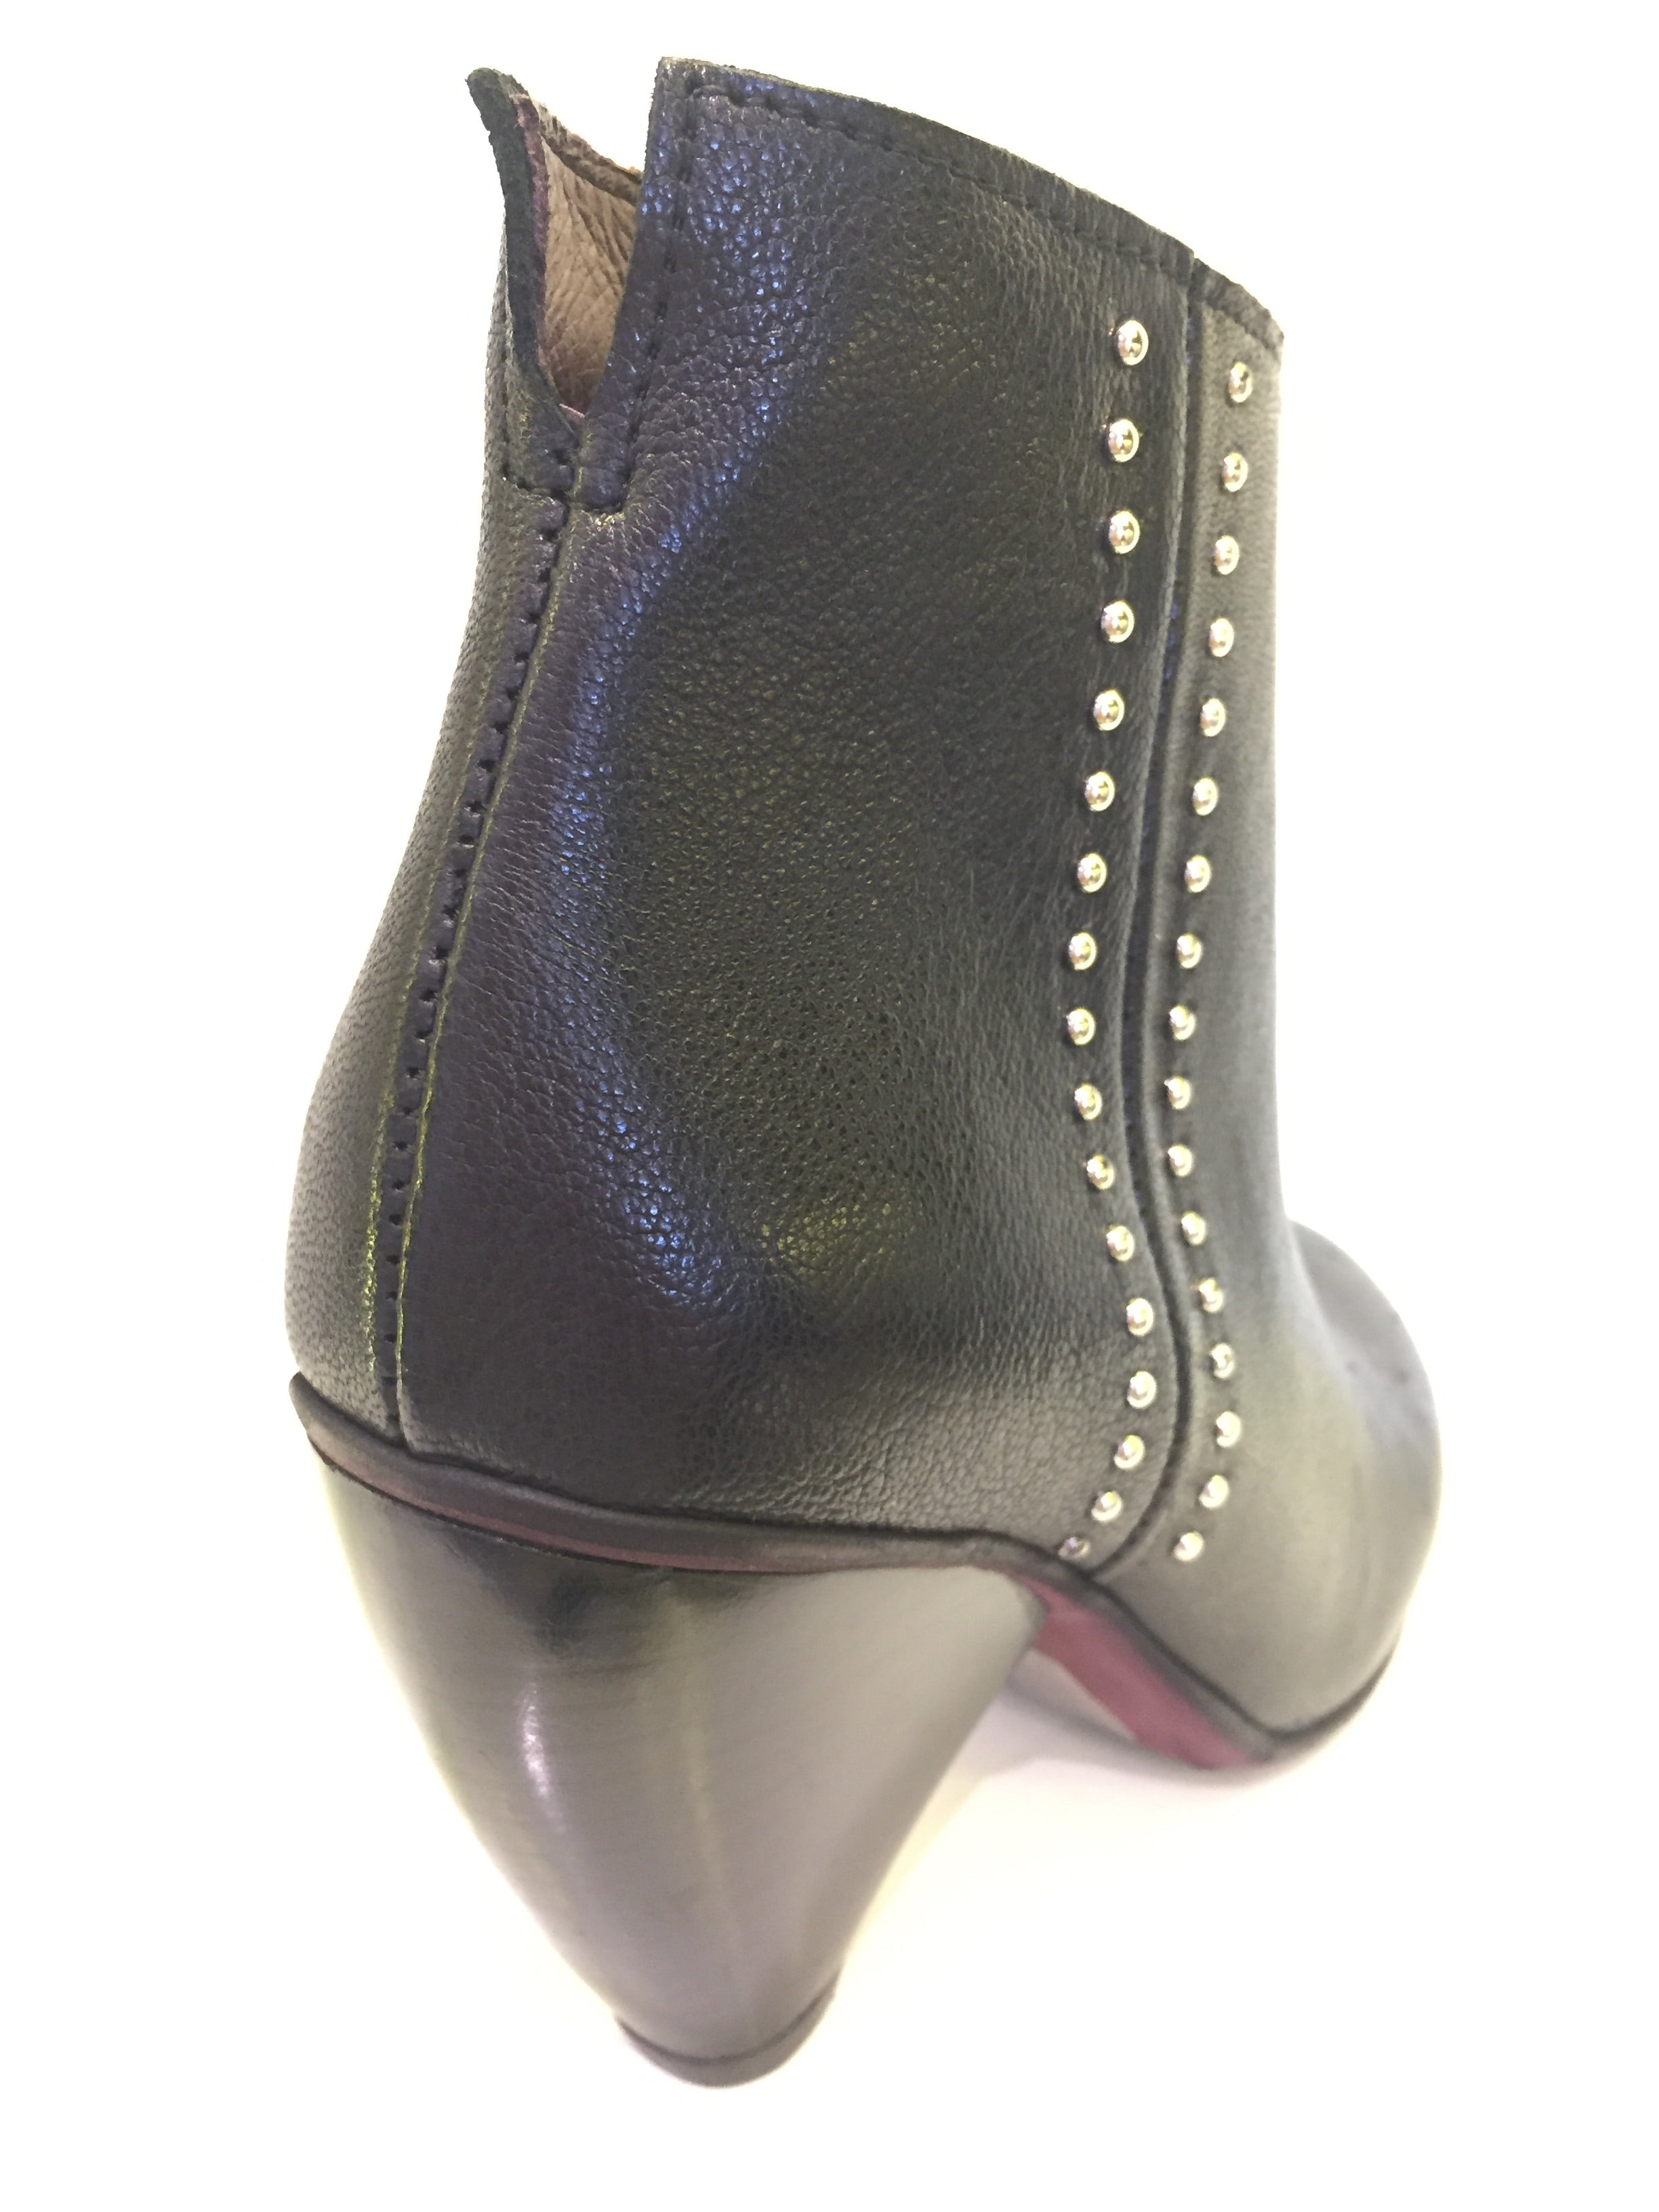 SpazioZero8 Black Peg Heel Boot